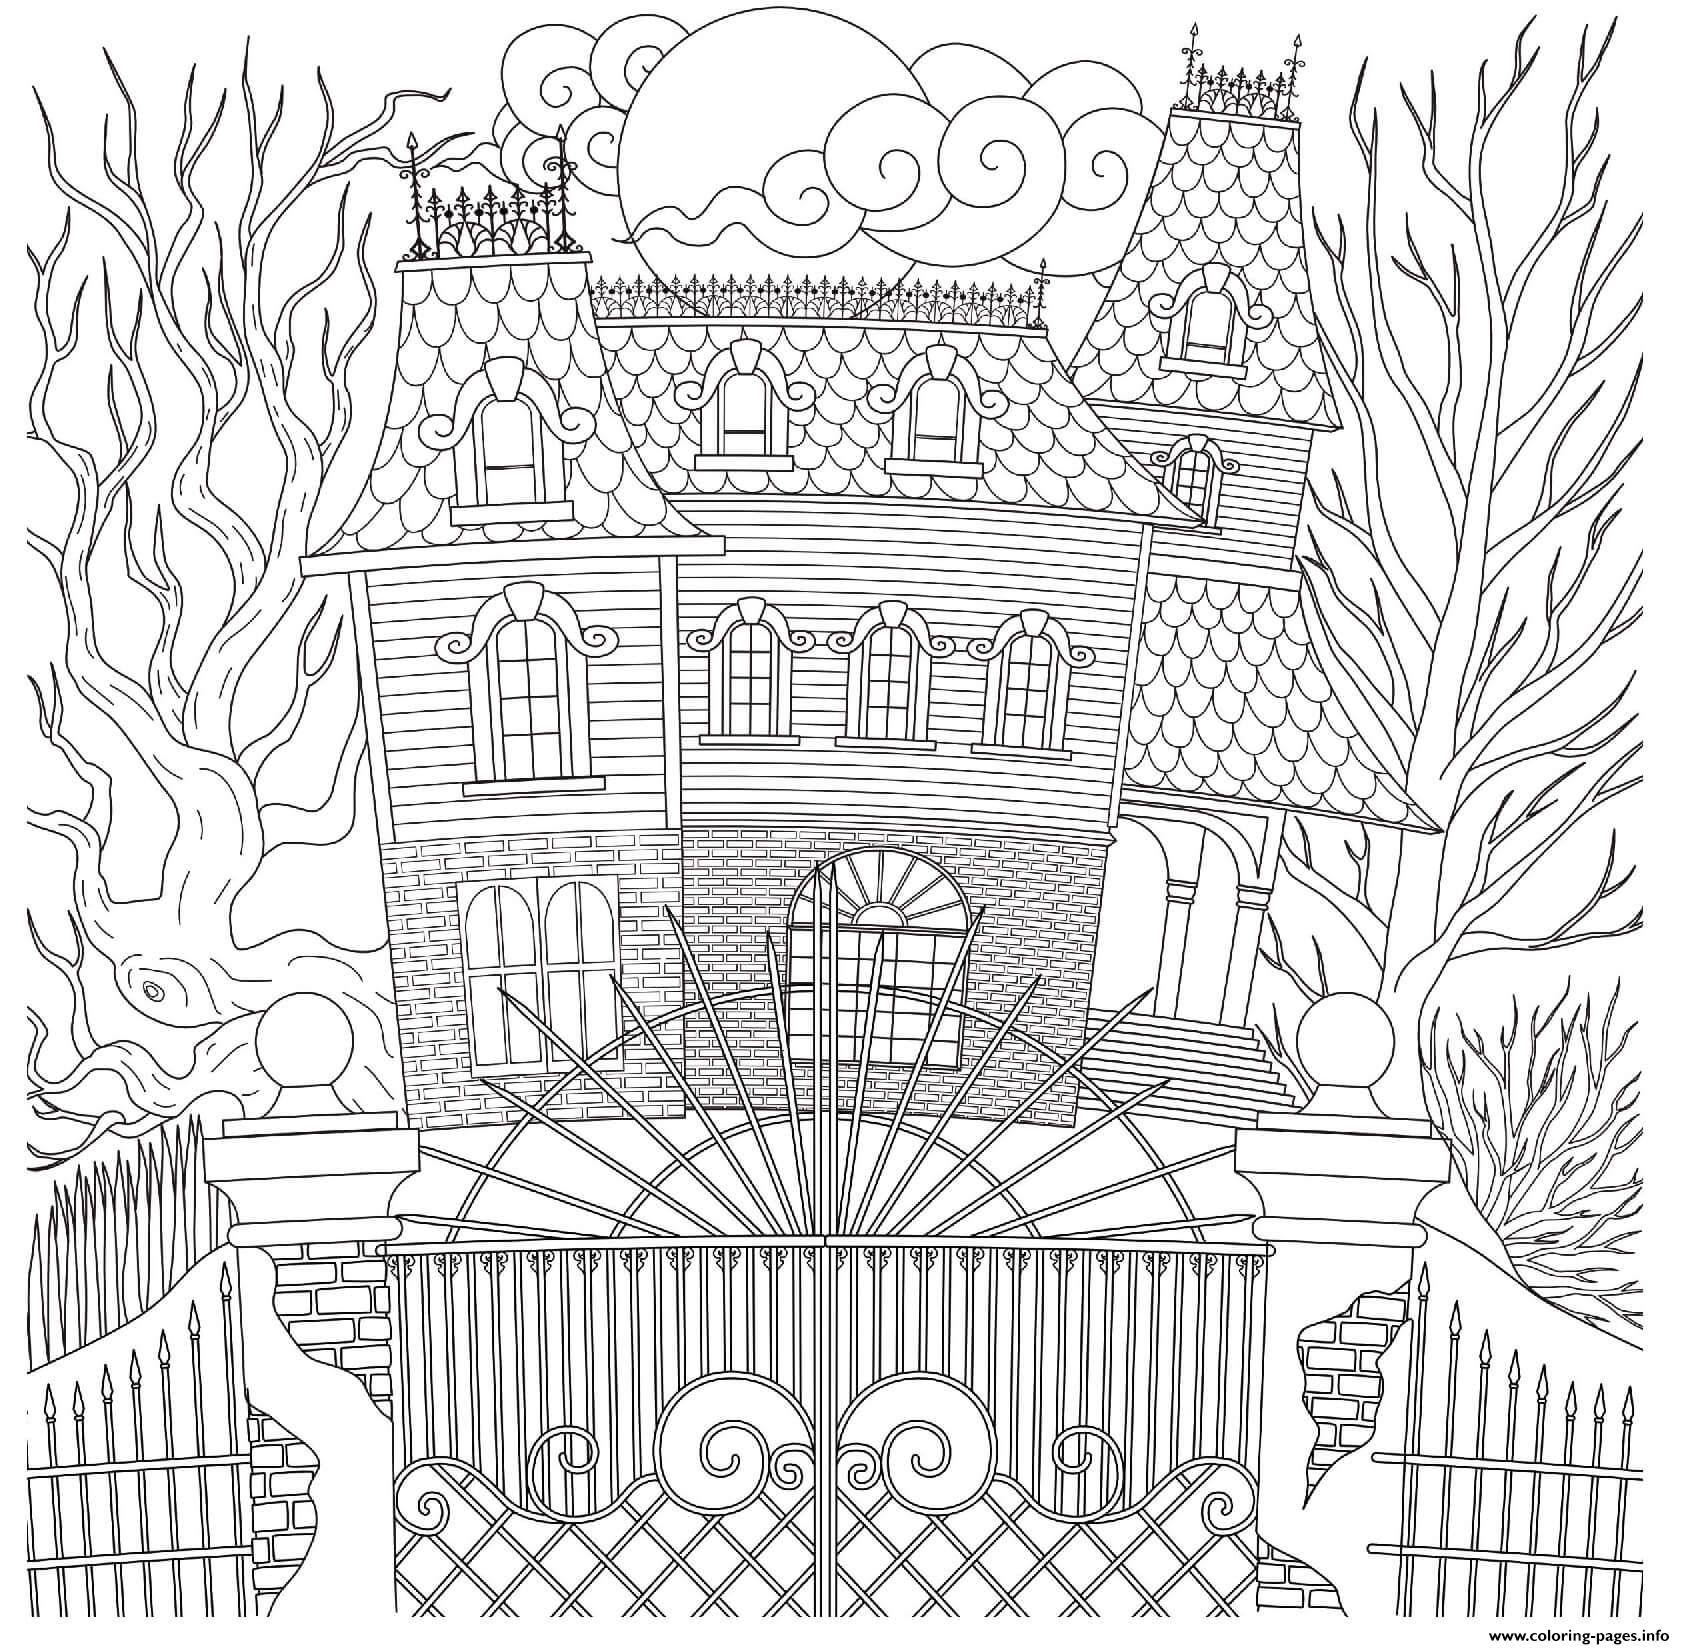 Halloween Spooky Haunted House Intricate Pattern Coloring Pages Printable